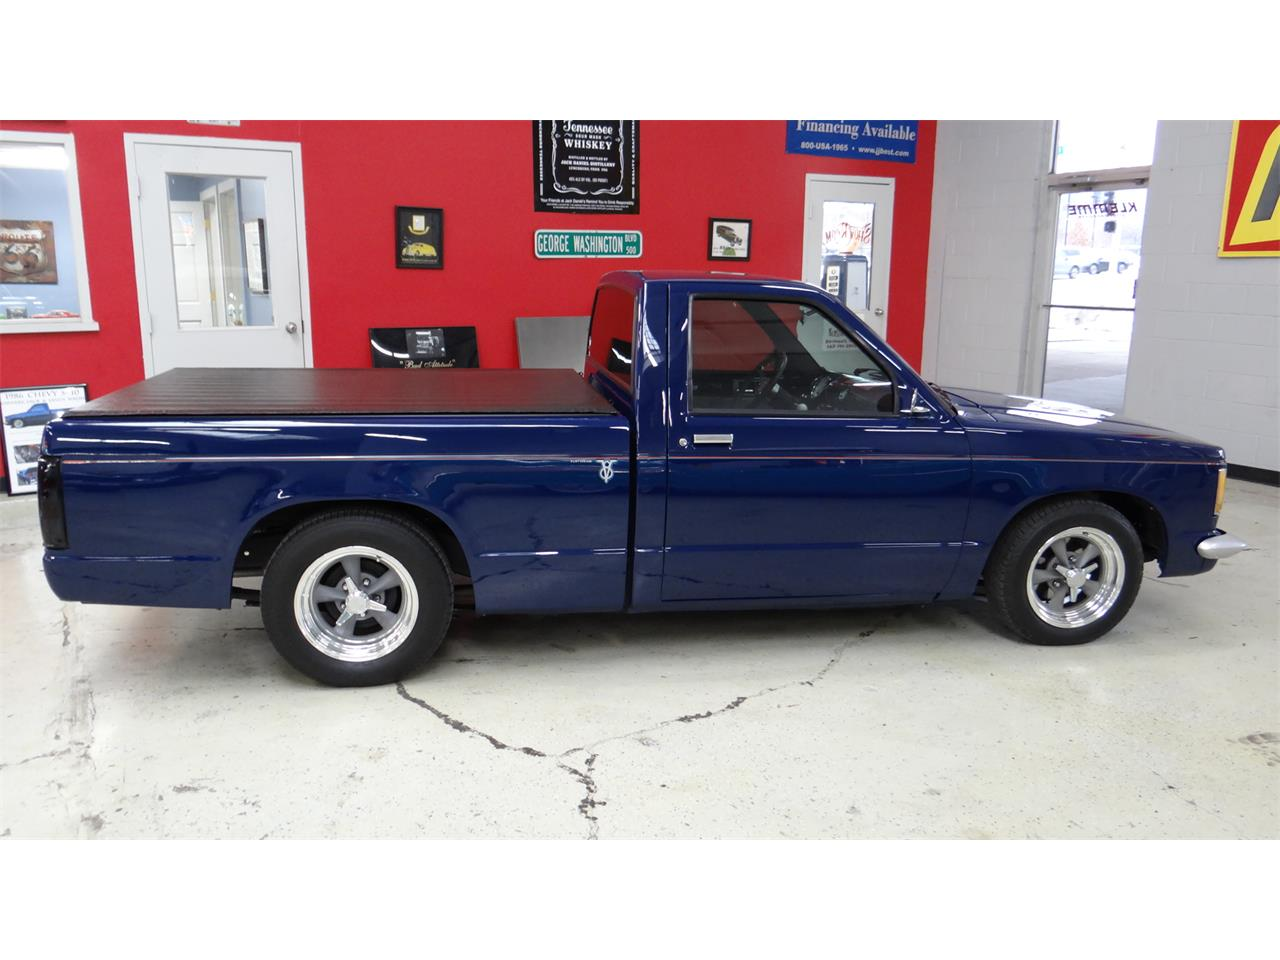 1986 Chevrolet S10 for sale in Davenport, IA – photo 2